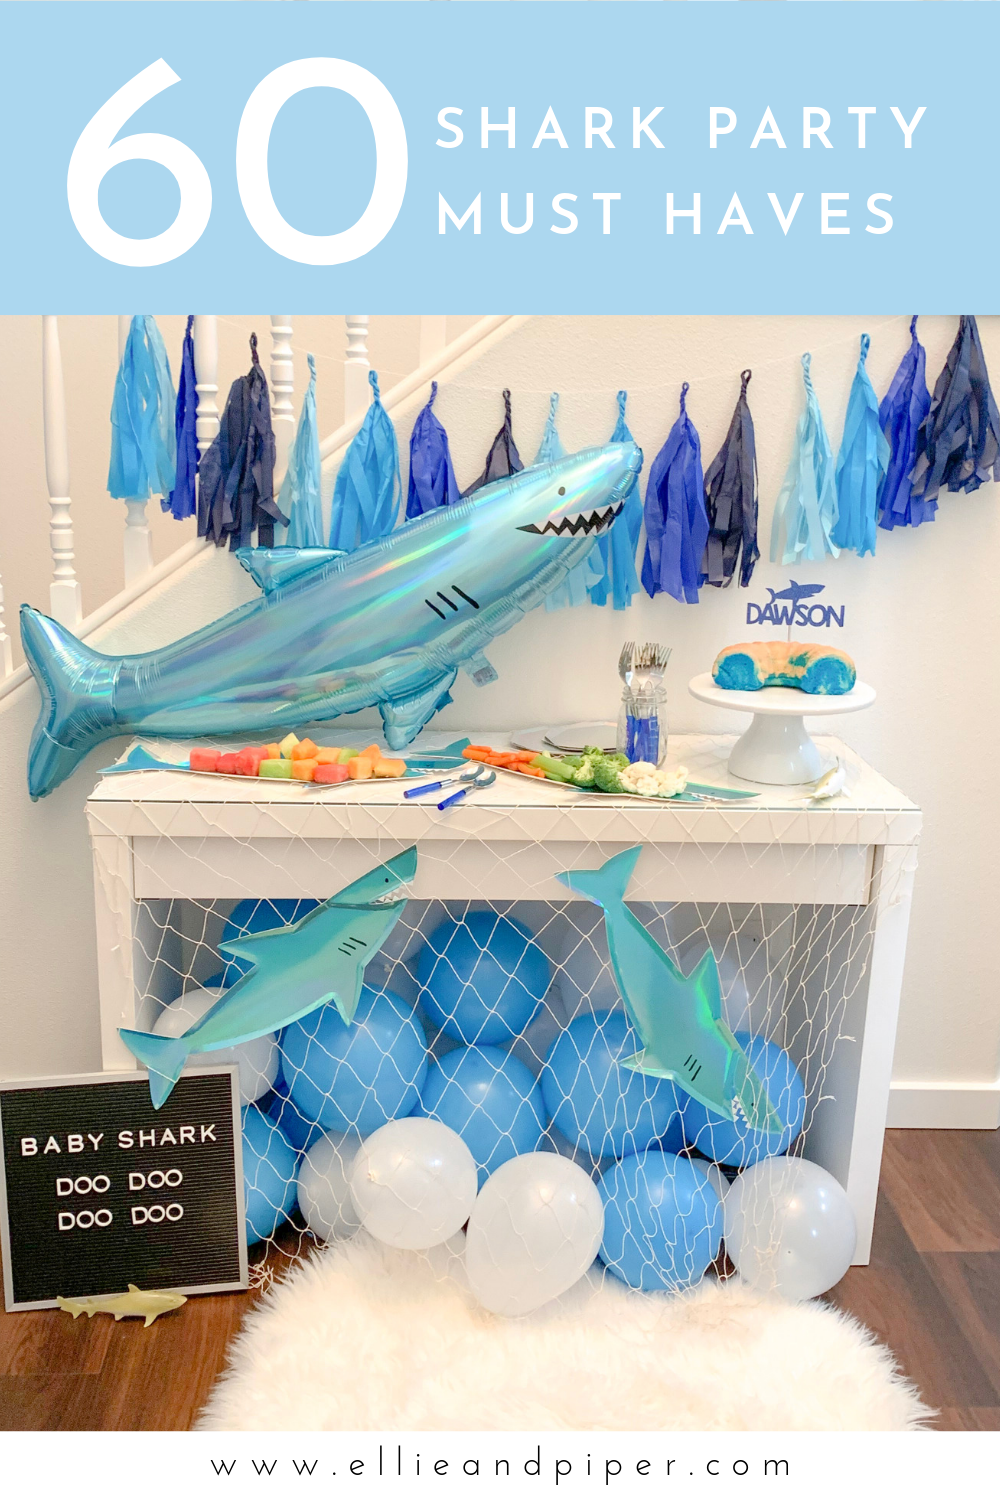 Shark Party Must Haves